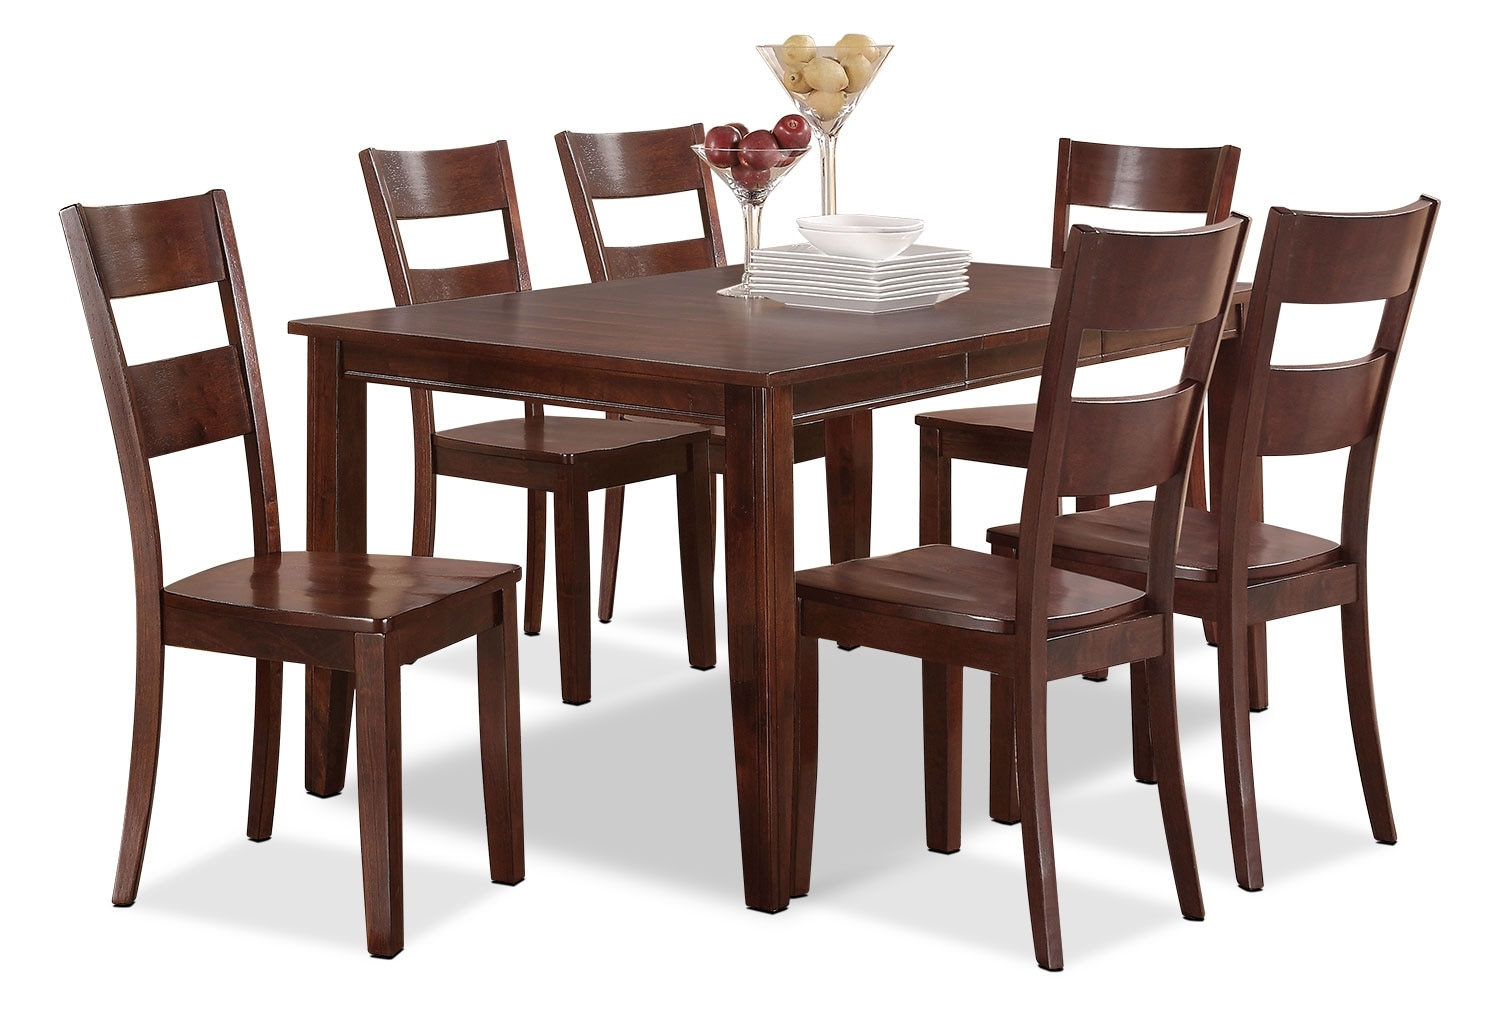 Holland 7-Piece Dinette Set - Brown Cherry